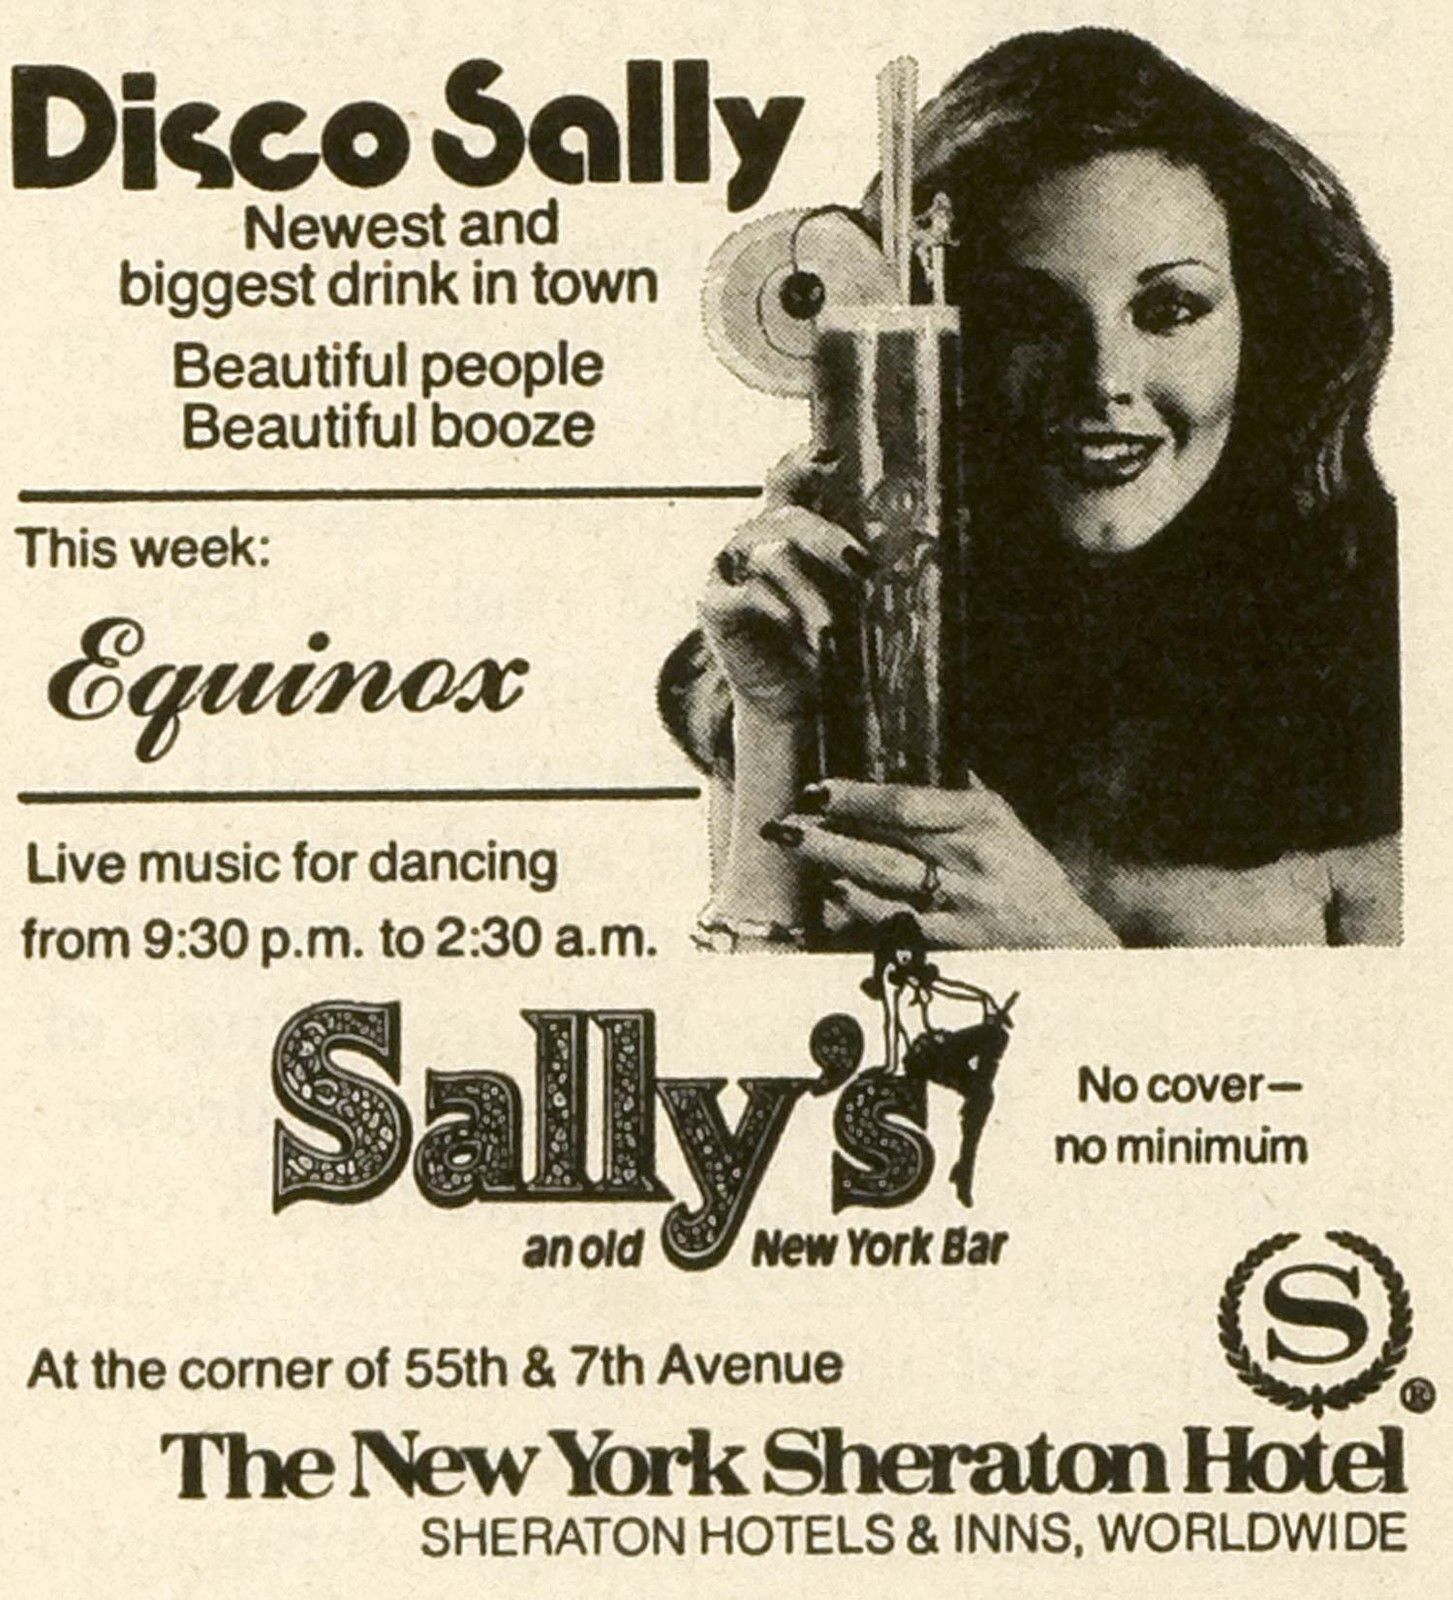 1979 Ad New York Sheraton Hotel Inn Disco Sally Cocktail